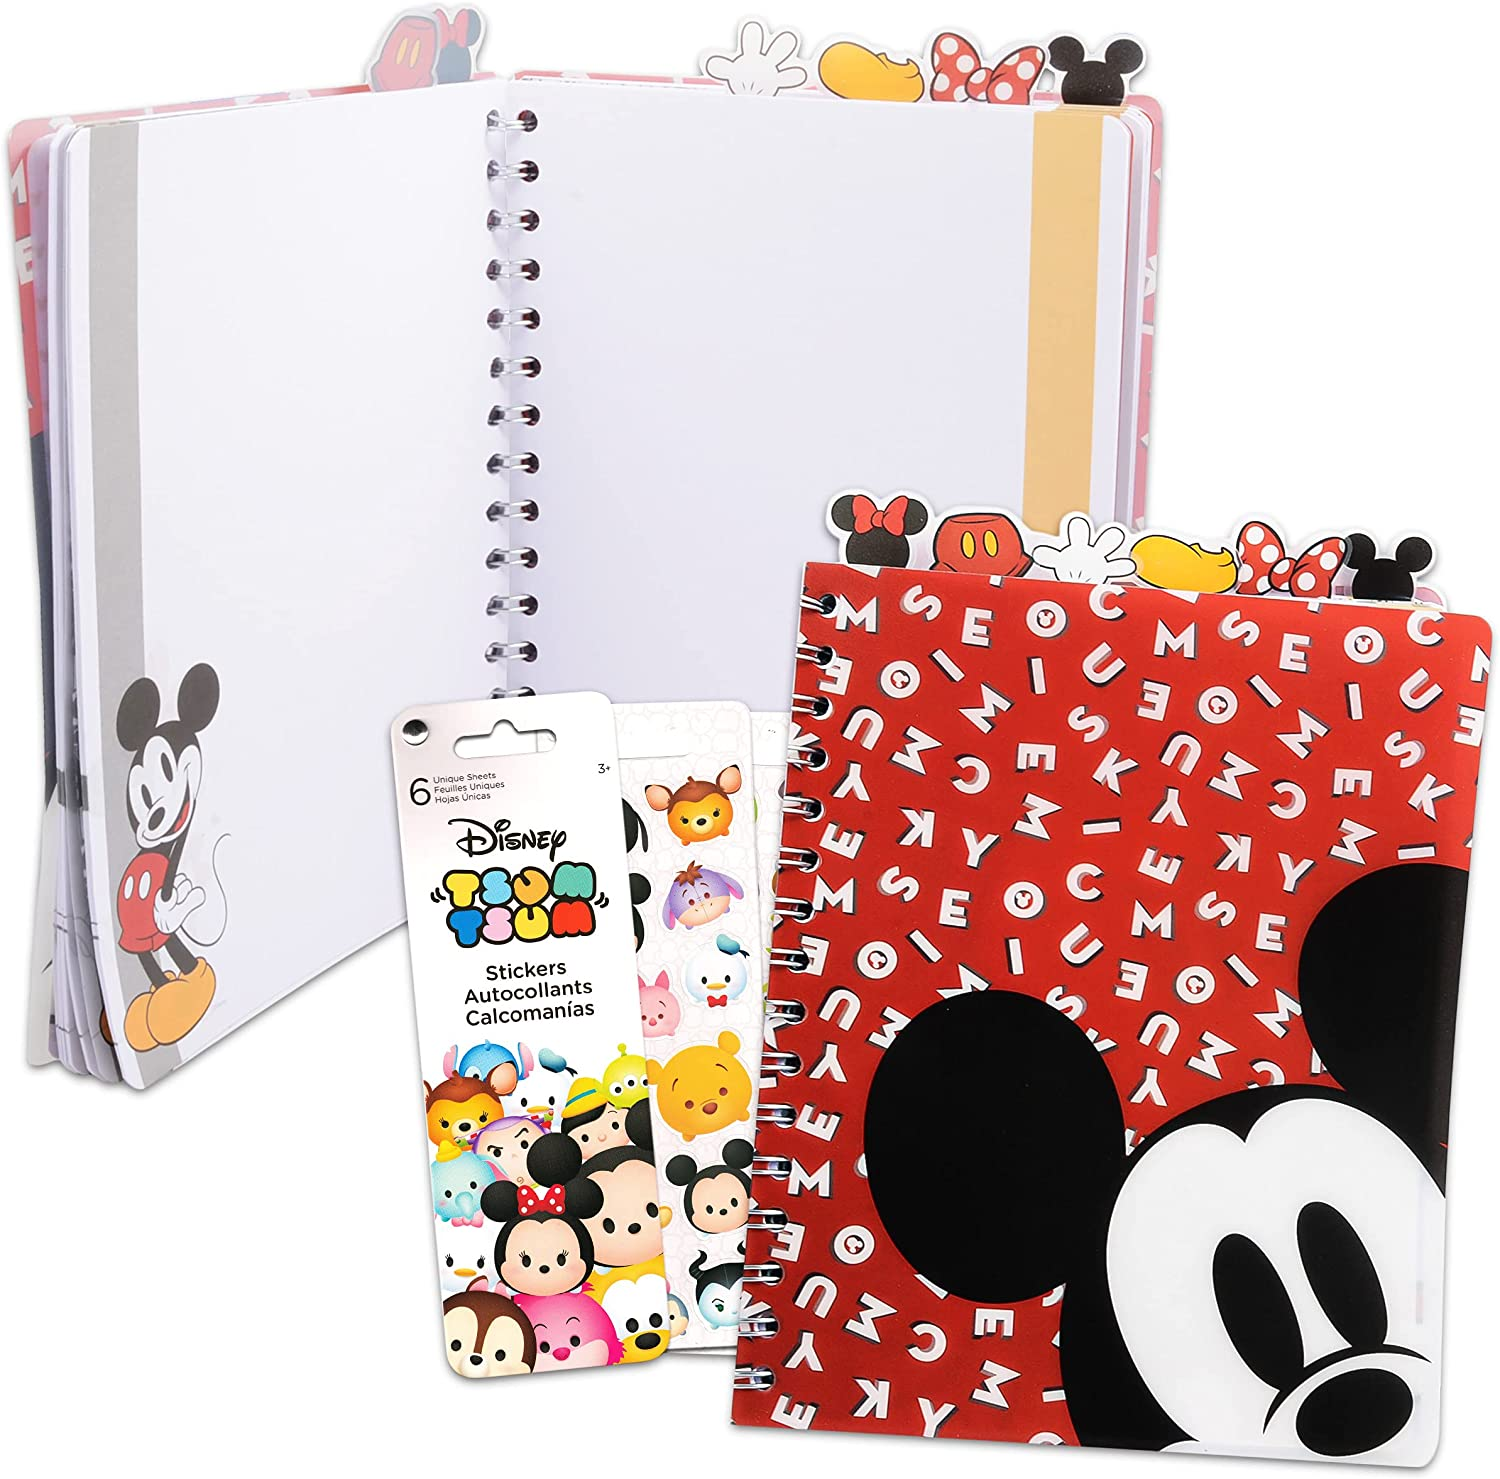 Mickey and Minnie School Supplies with Stickers Tsum Special Long Beach Mall price for a limited time Bundle